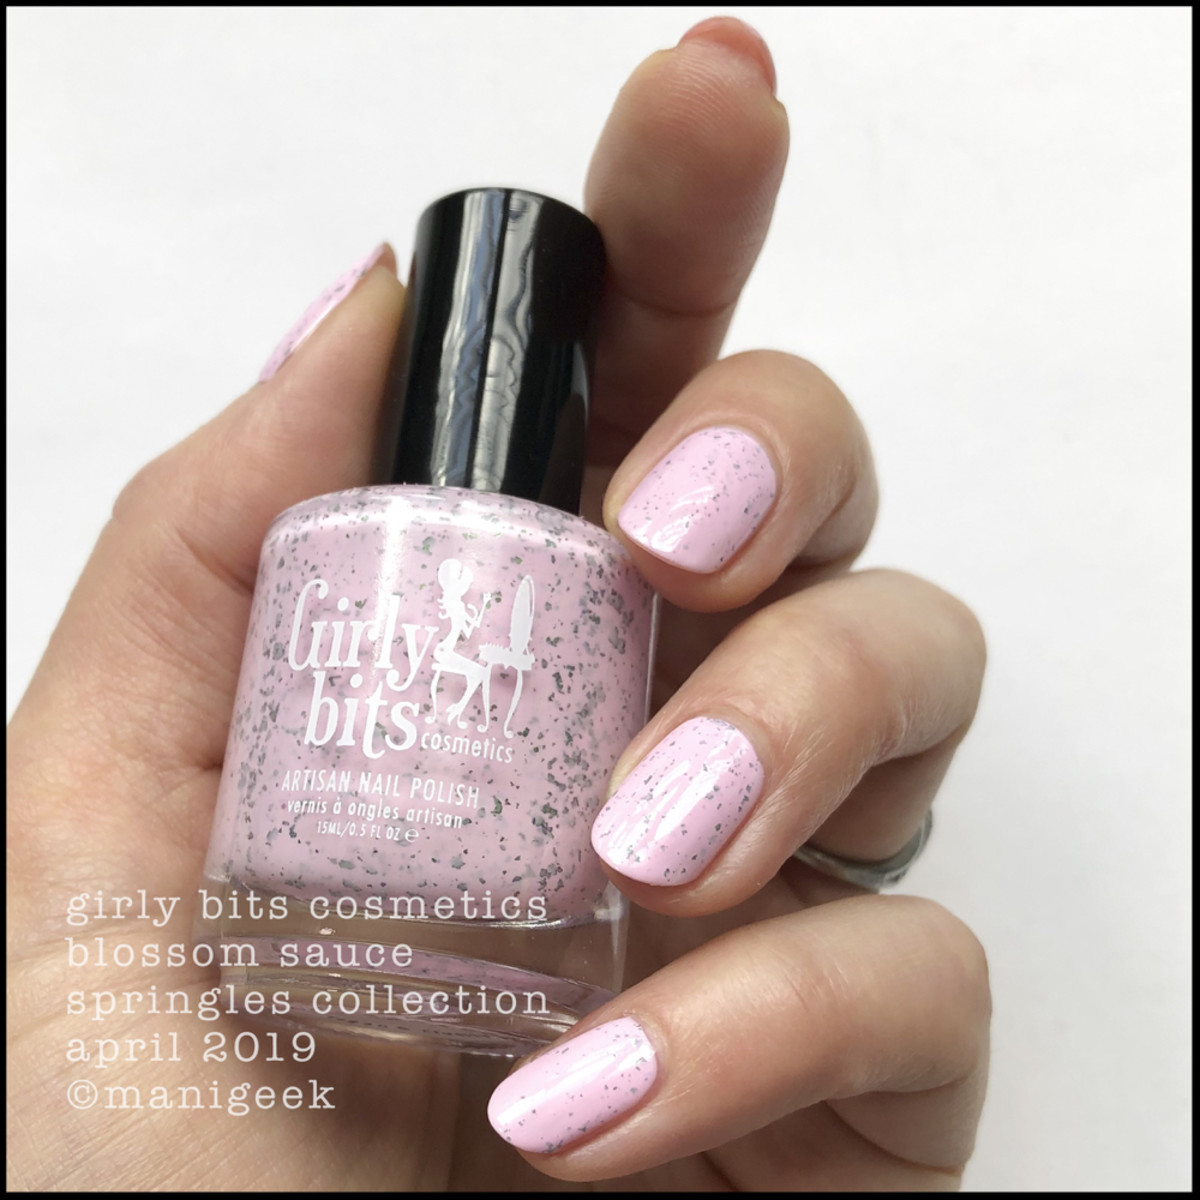 Girly Bits Blossom Sauce - Springles Collection 2019